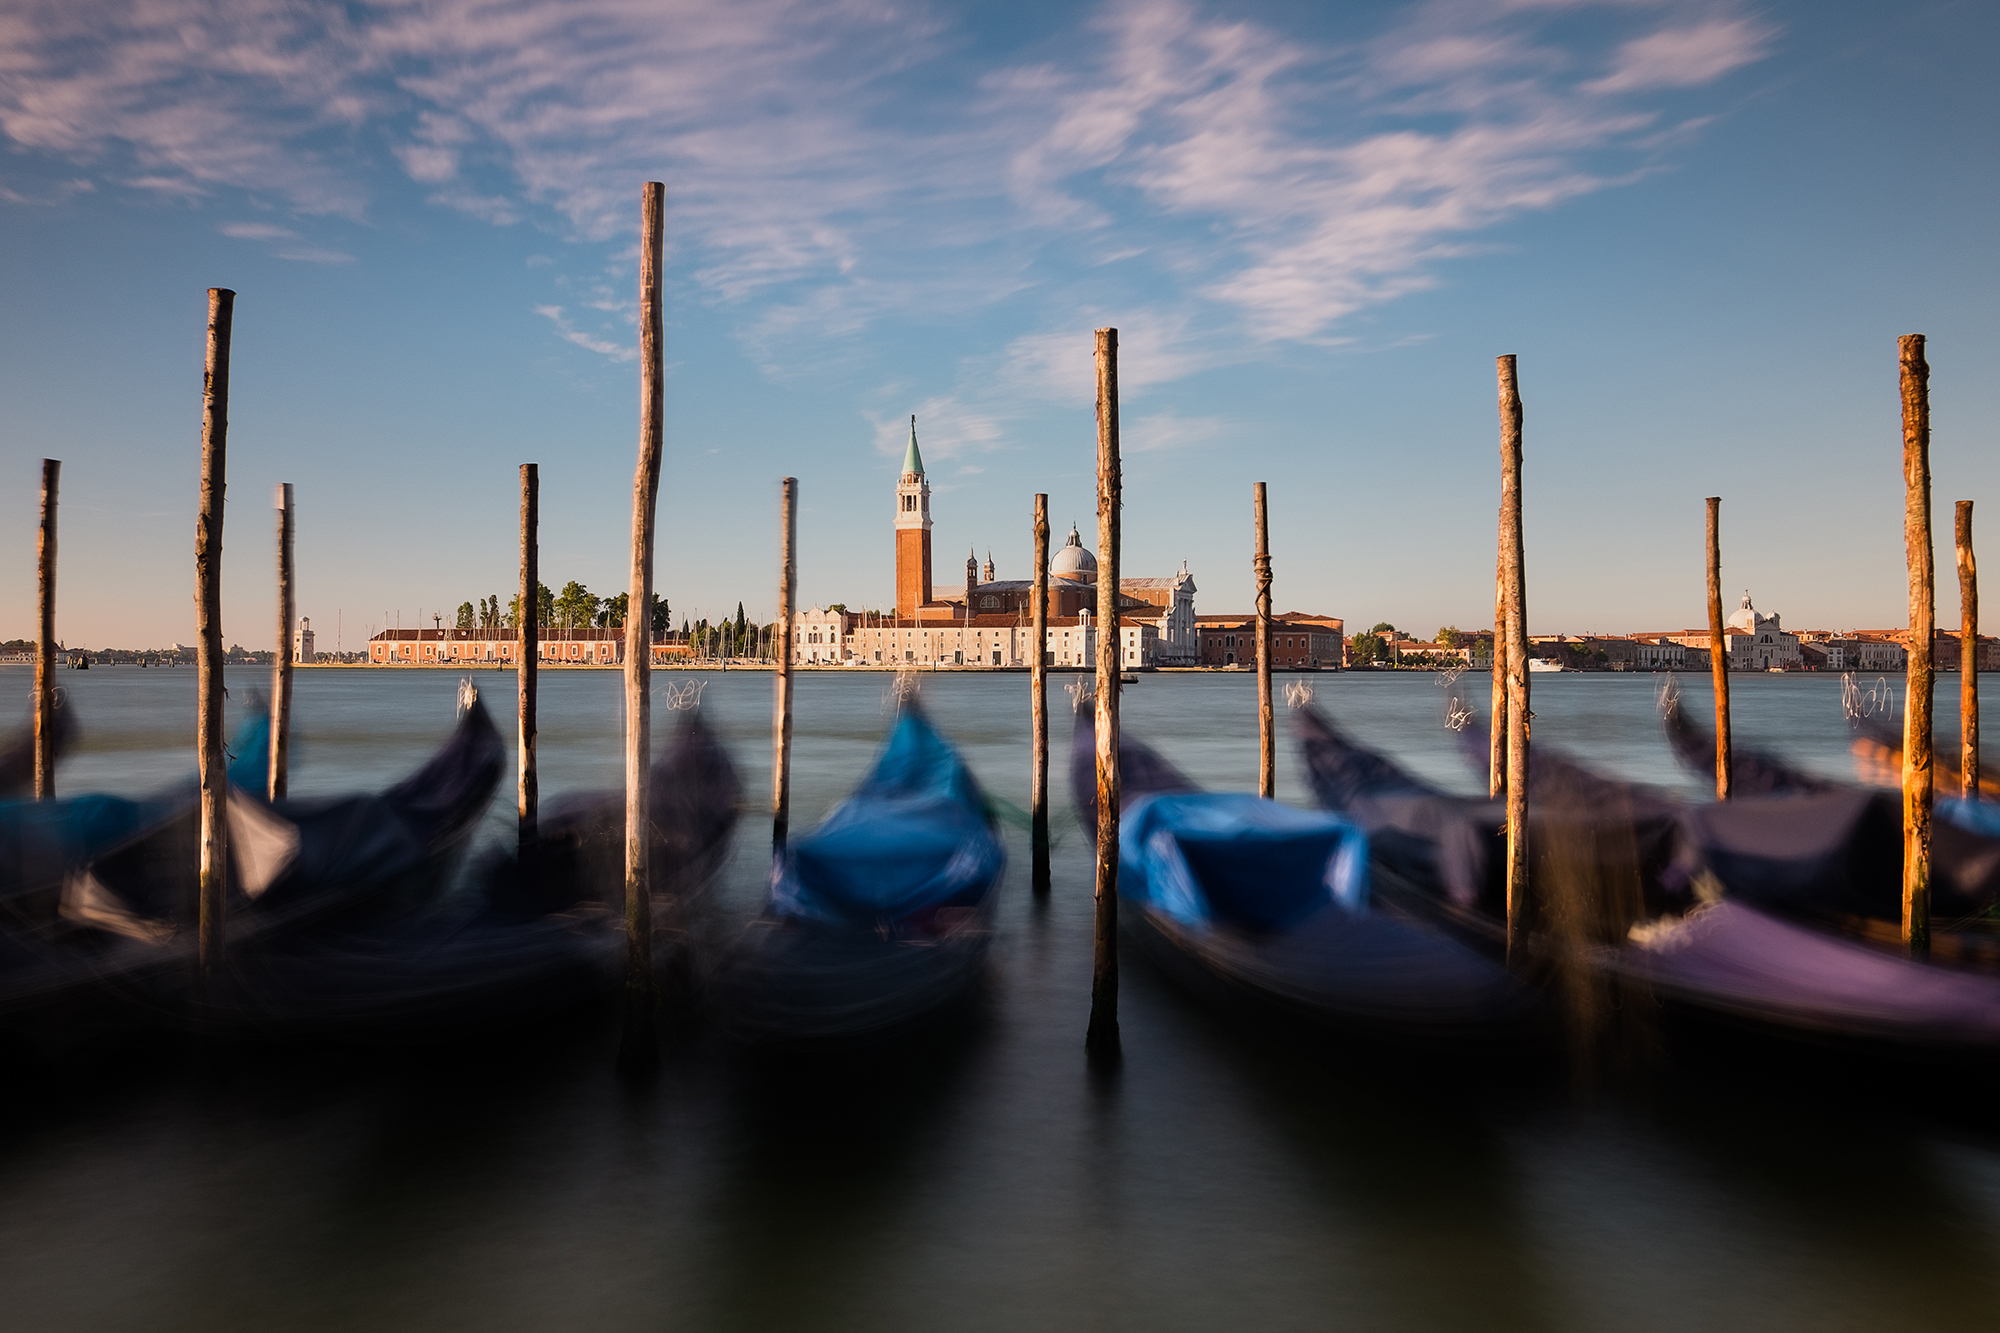 The gondolas in San Marco Basin, Venice, Italy by Trevor Sherwin